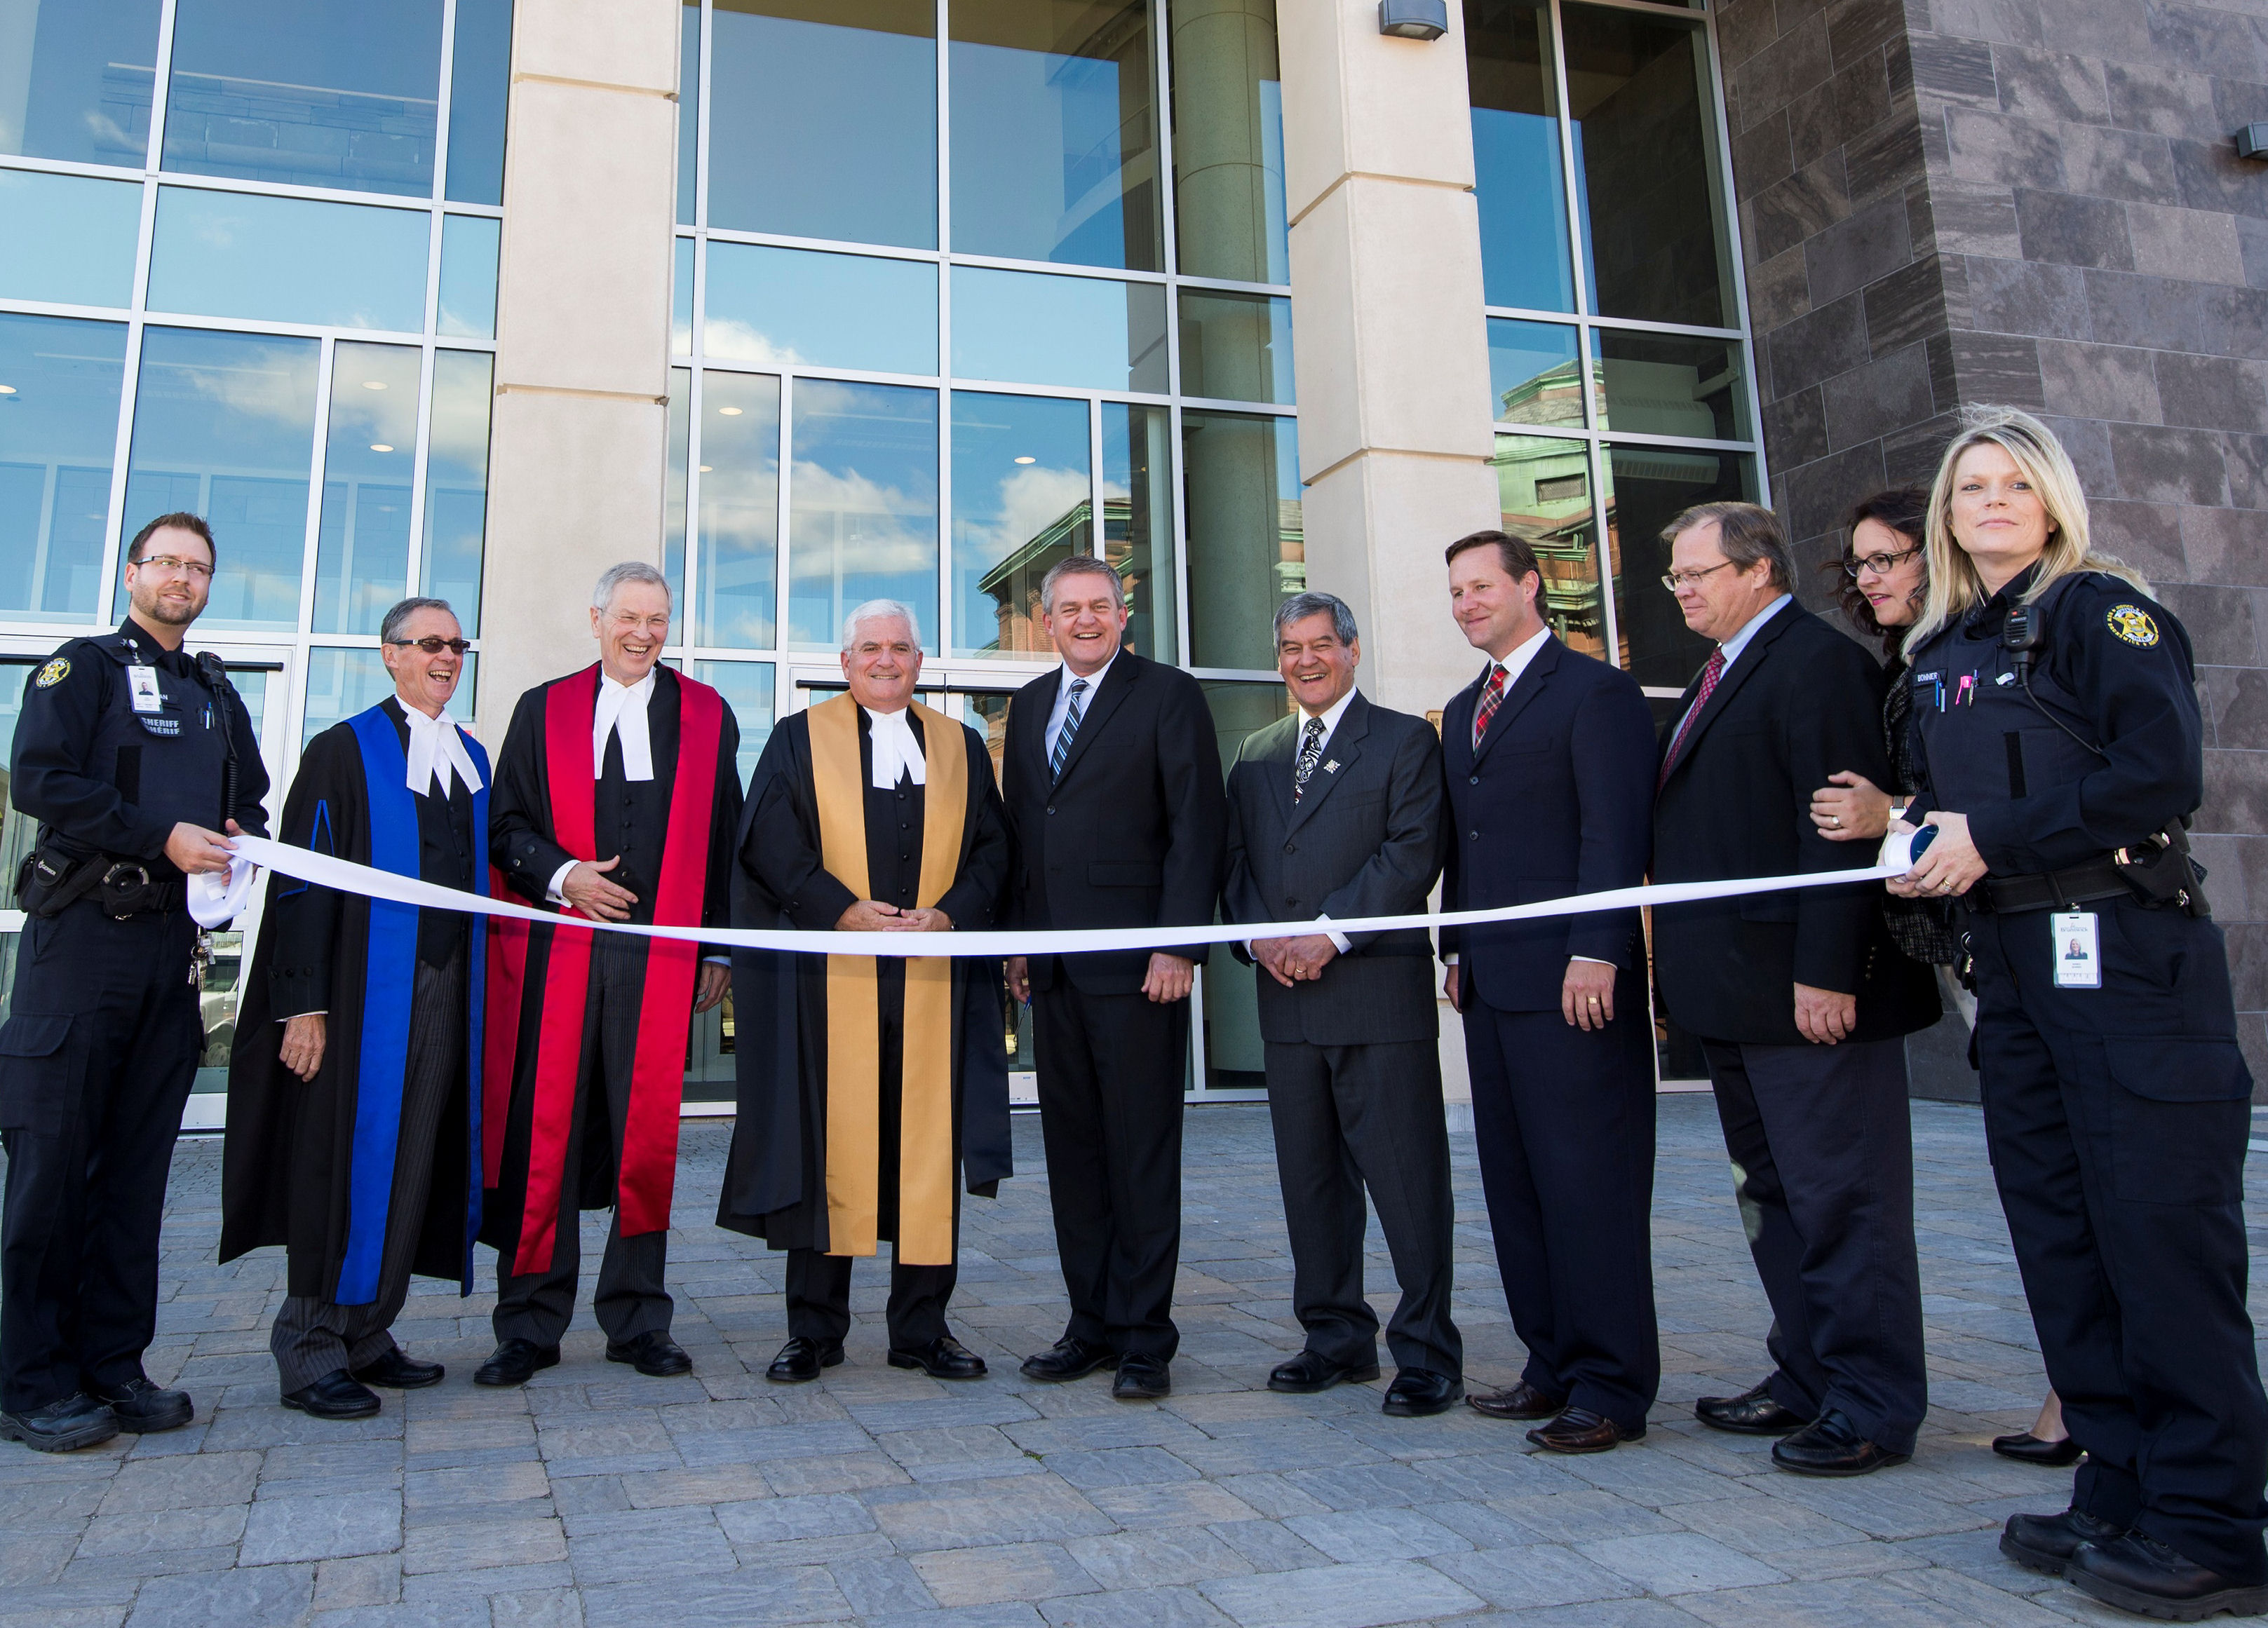 Saint John Courts has officially opened